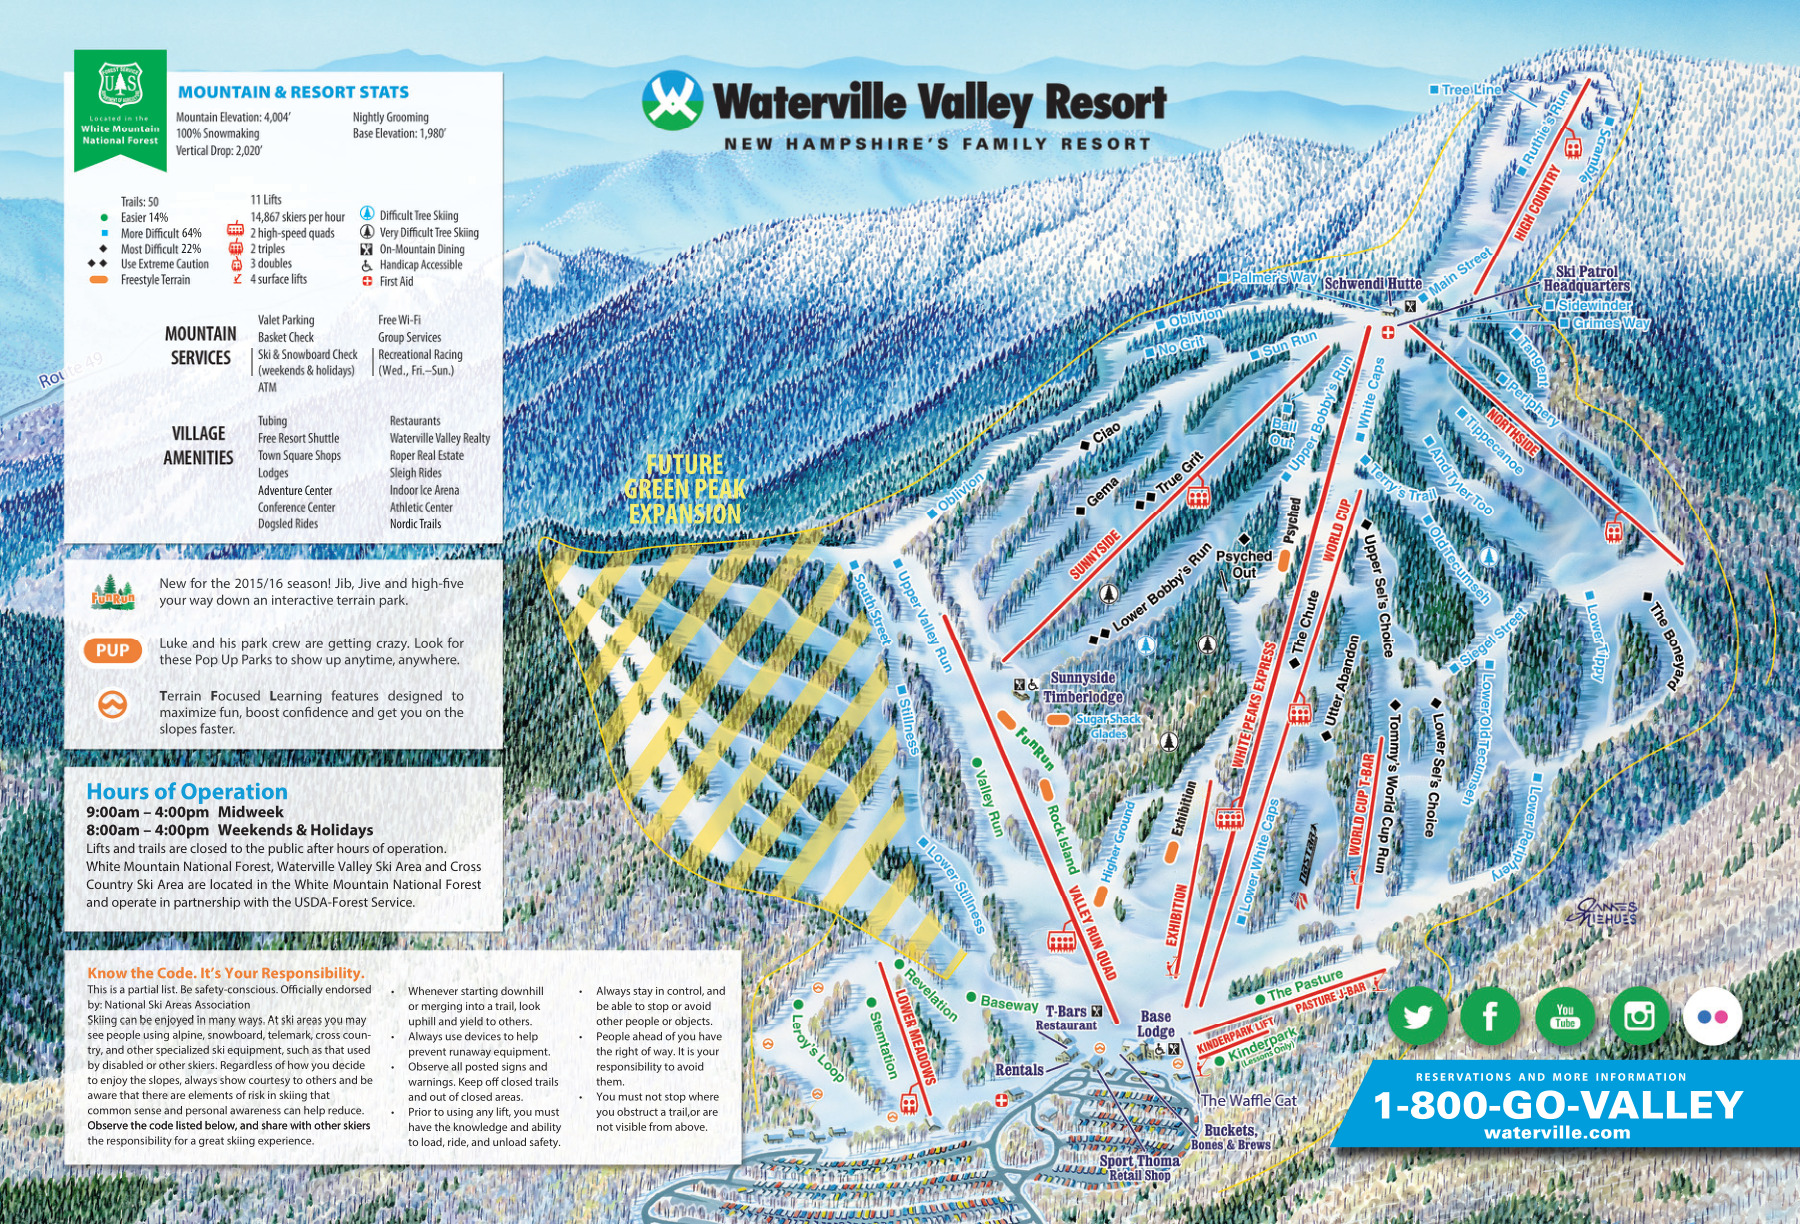 waterville valley Get great deals for 250 resorts like waterville valley when you buy in advance limited quantities, book now mobile ticket friendly live customer support.